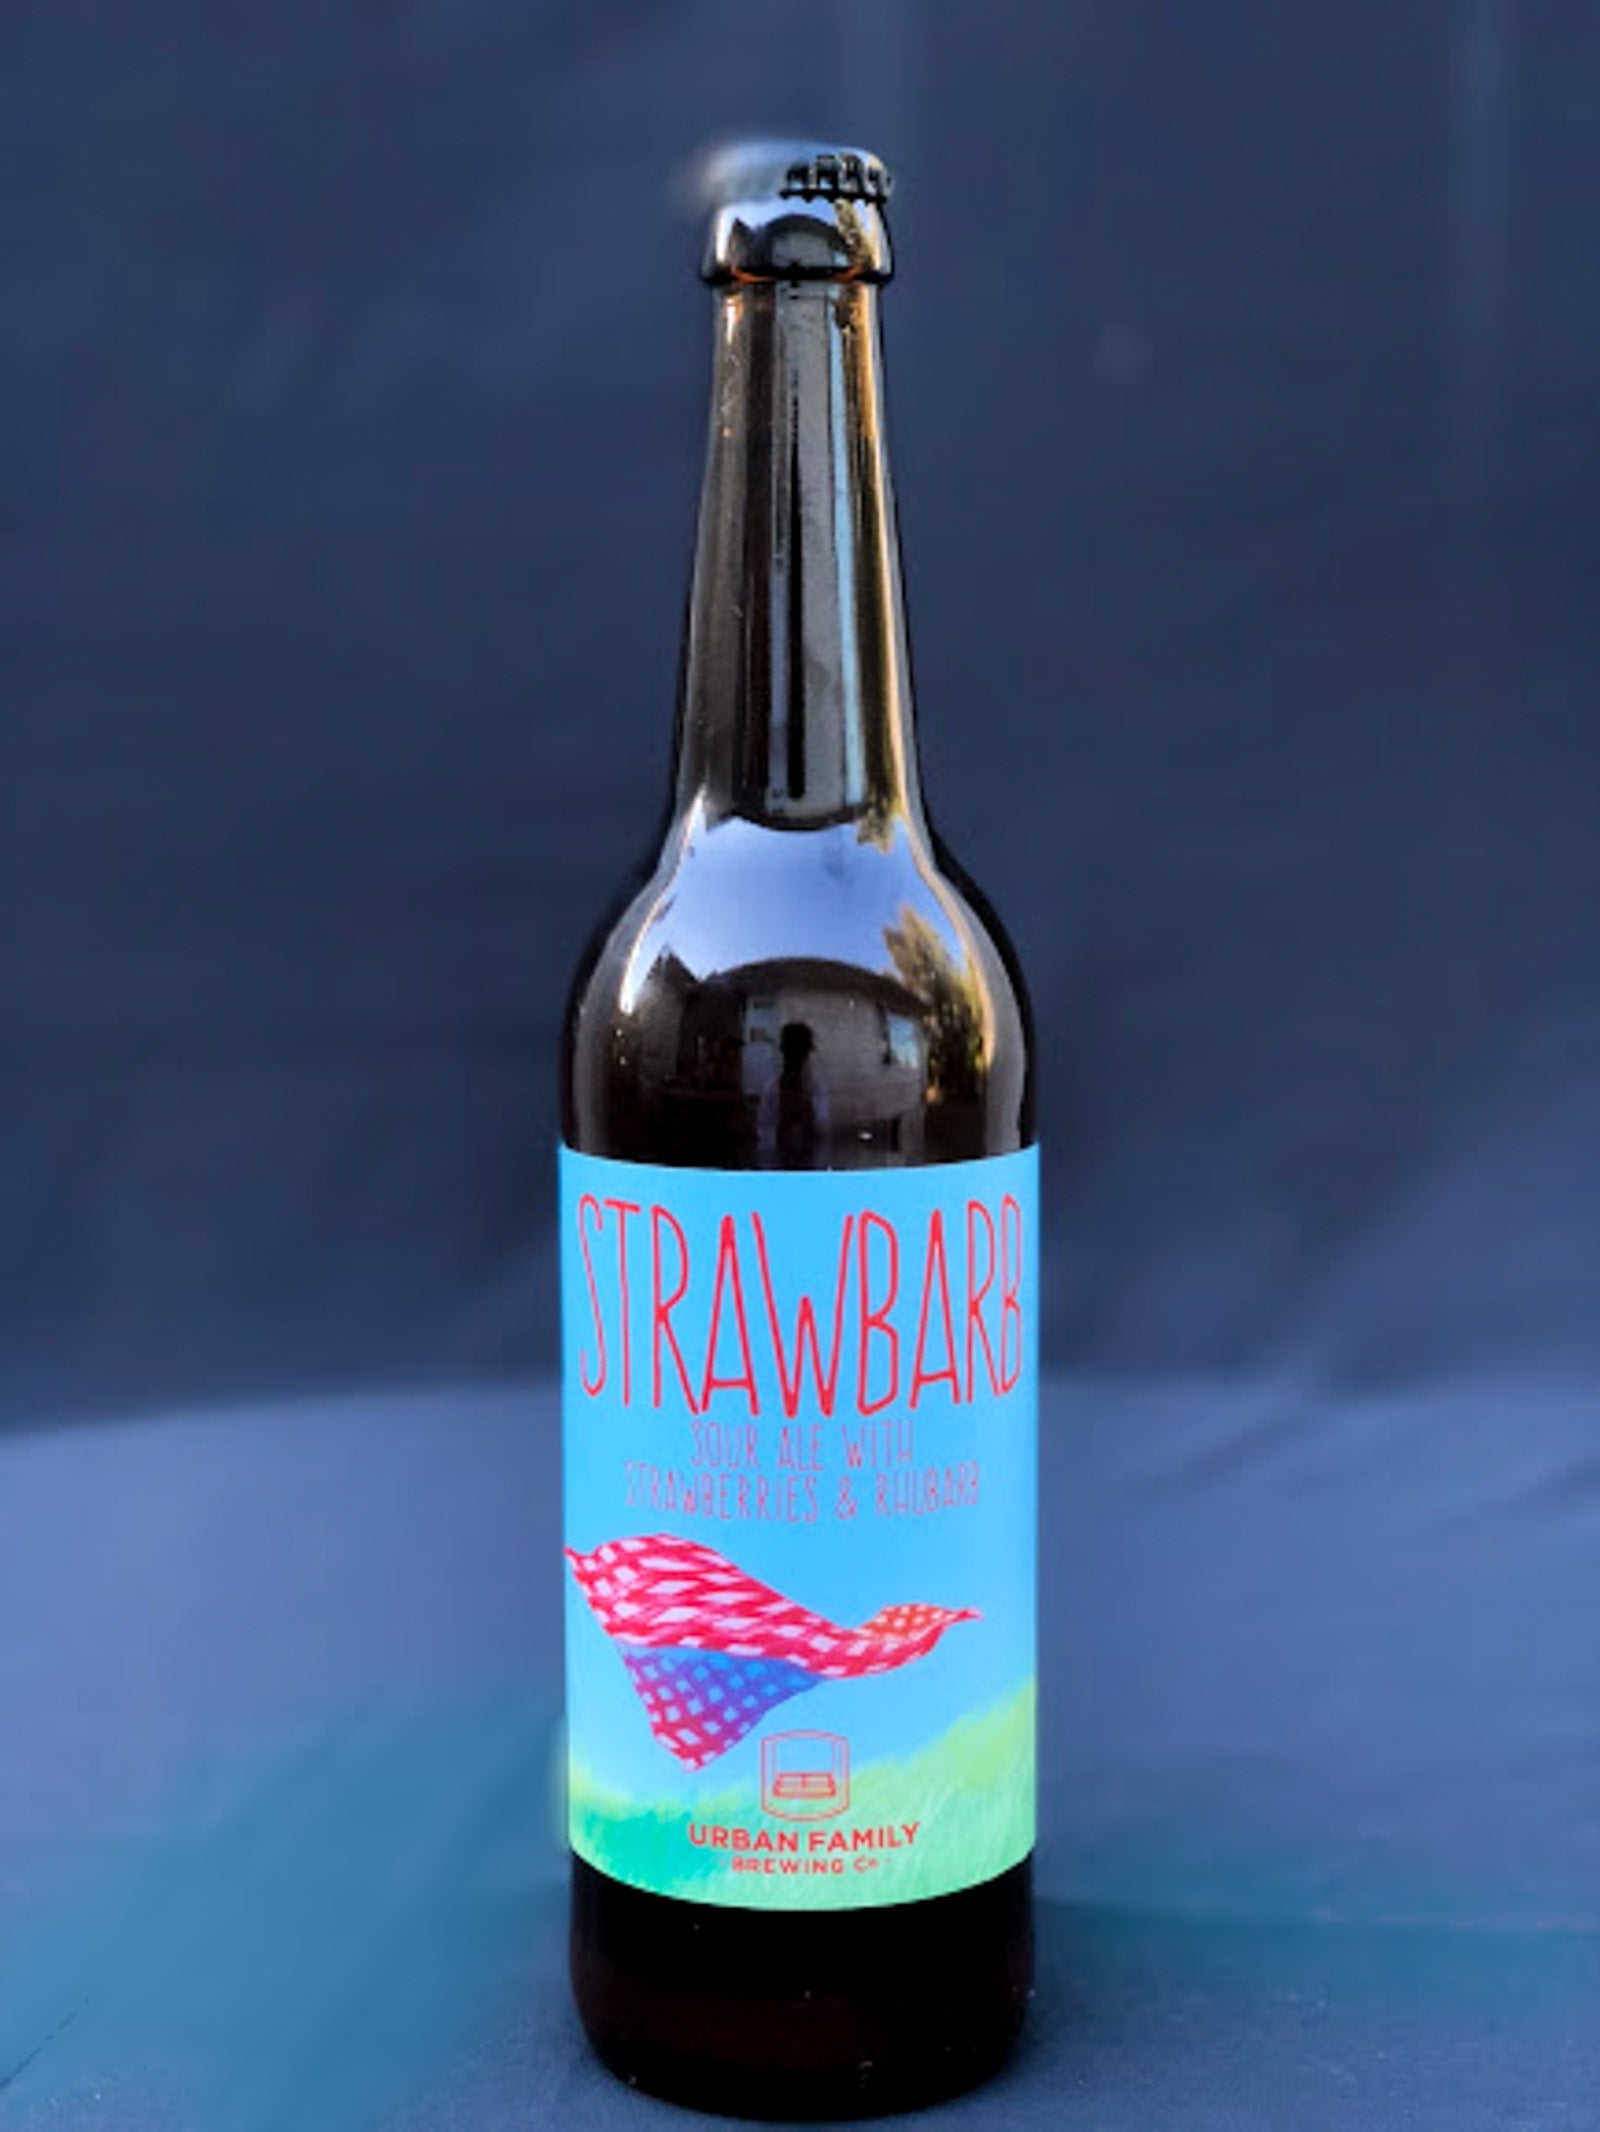 Urban Family Brewing Strawbard Sour Ale with Strawberries & Rhubarb American Wild Ale